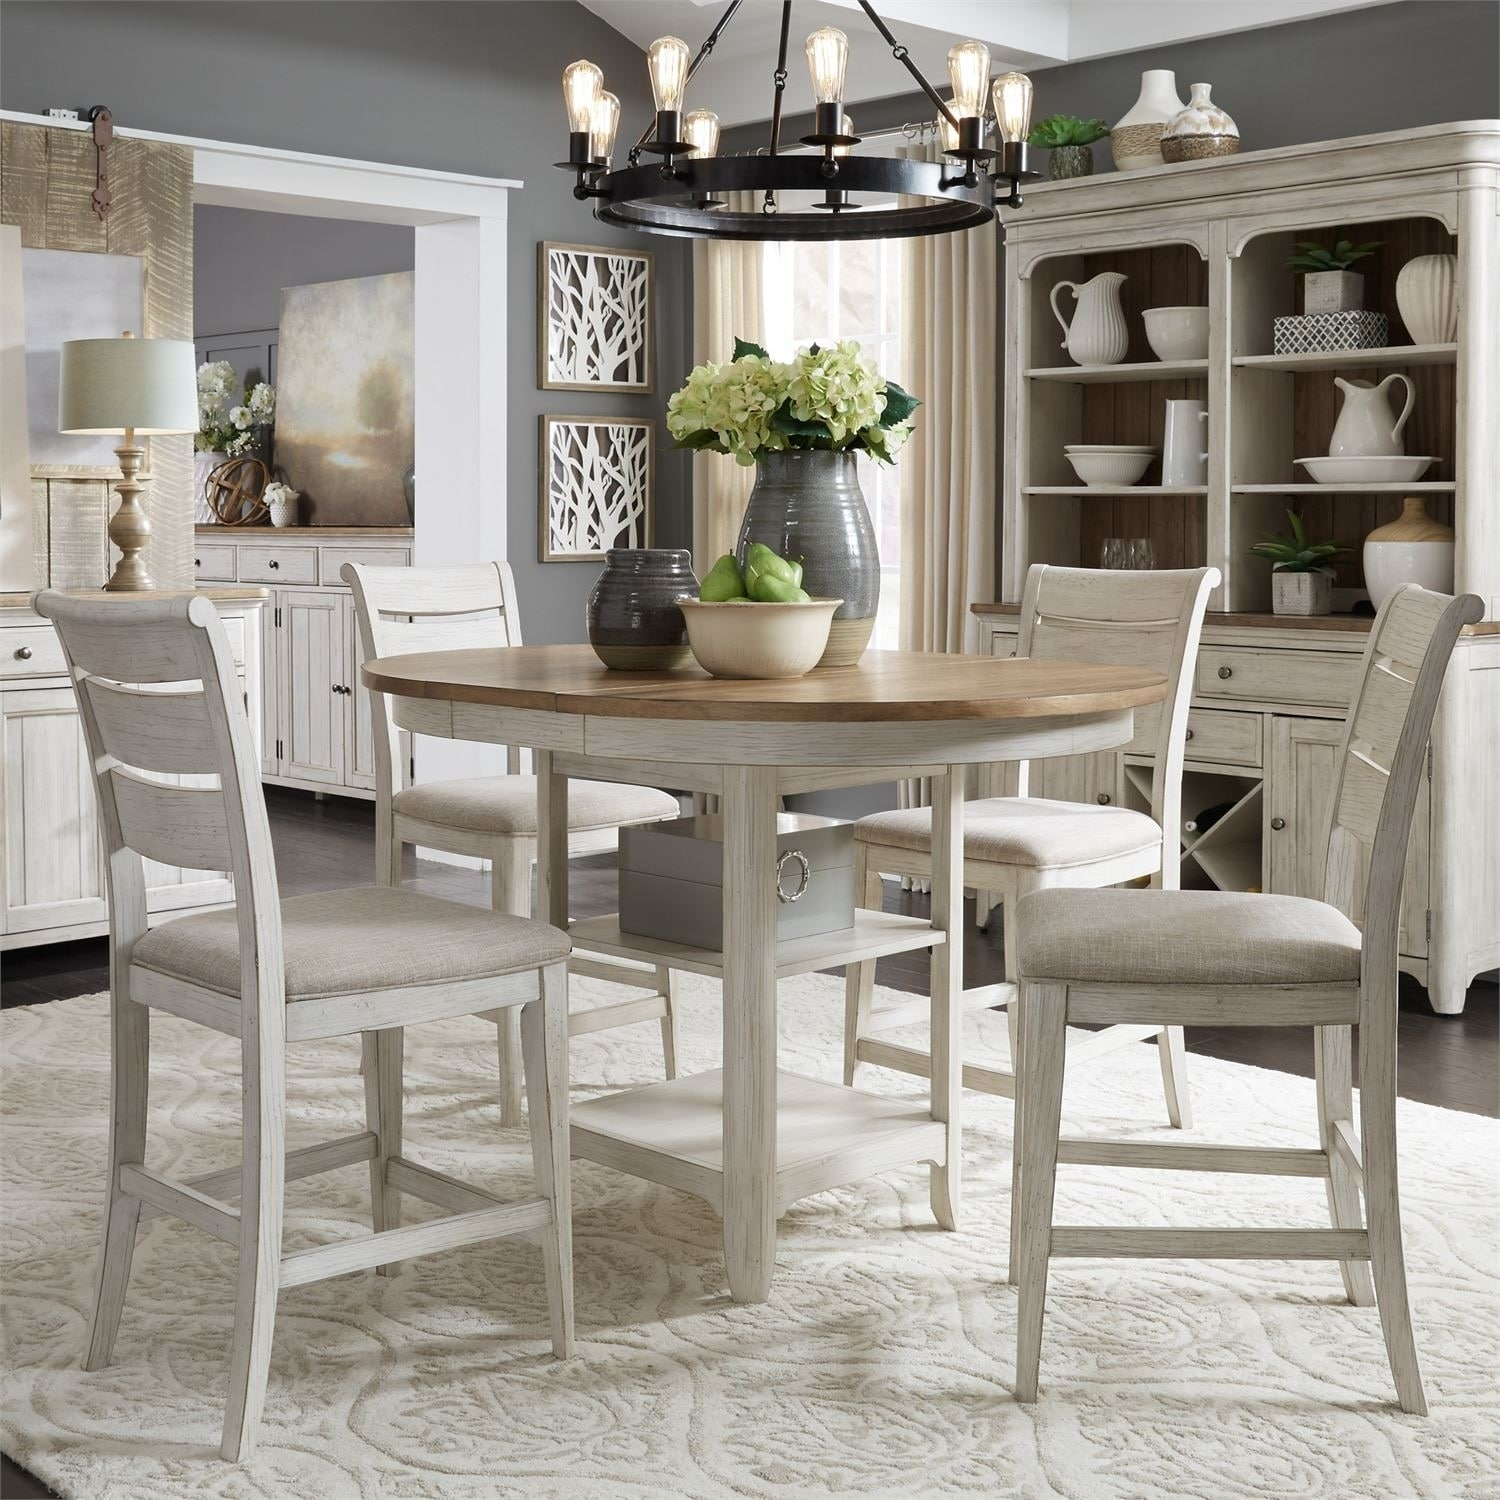 Shop Farmhouse Reimagined Antique White 5-piece Gathering Table Set - On  Sale - Free Shipping Today - Overstock.com - 25770890 - Shop Farmhouse Reimagined Antique White 5-piece Gathering Table Set